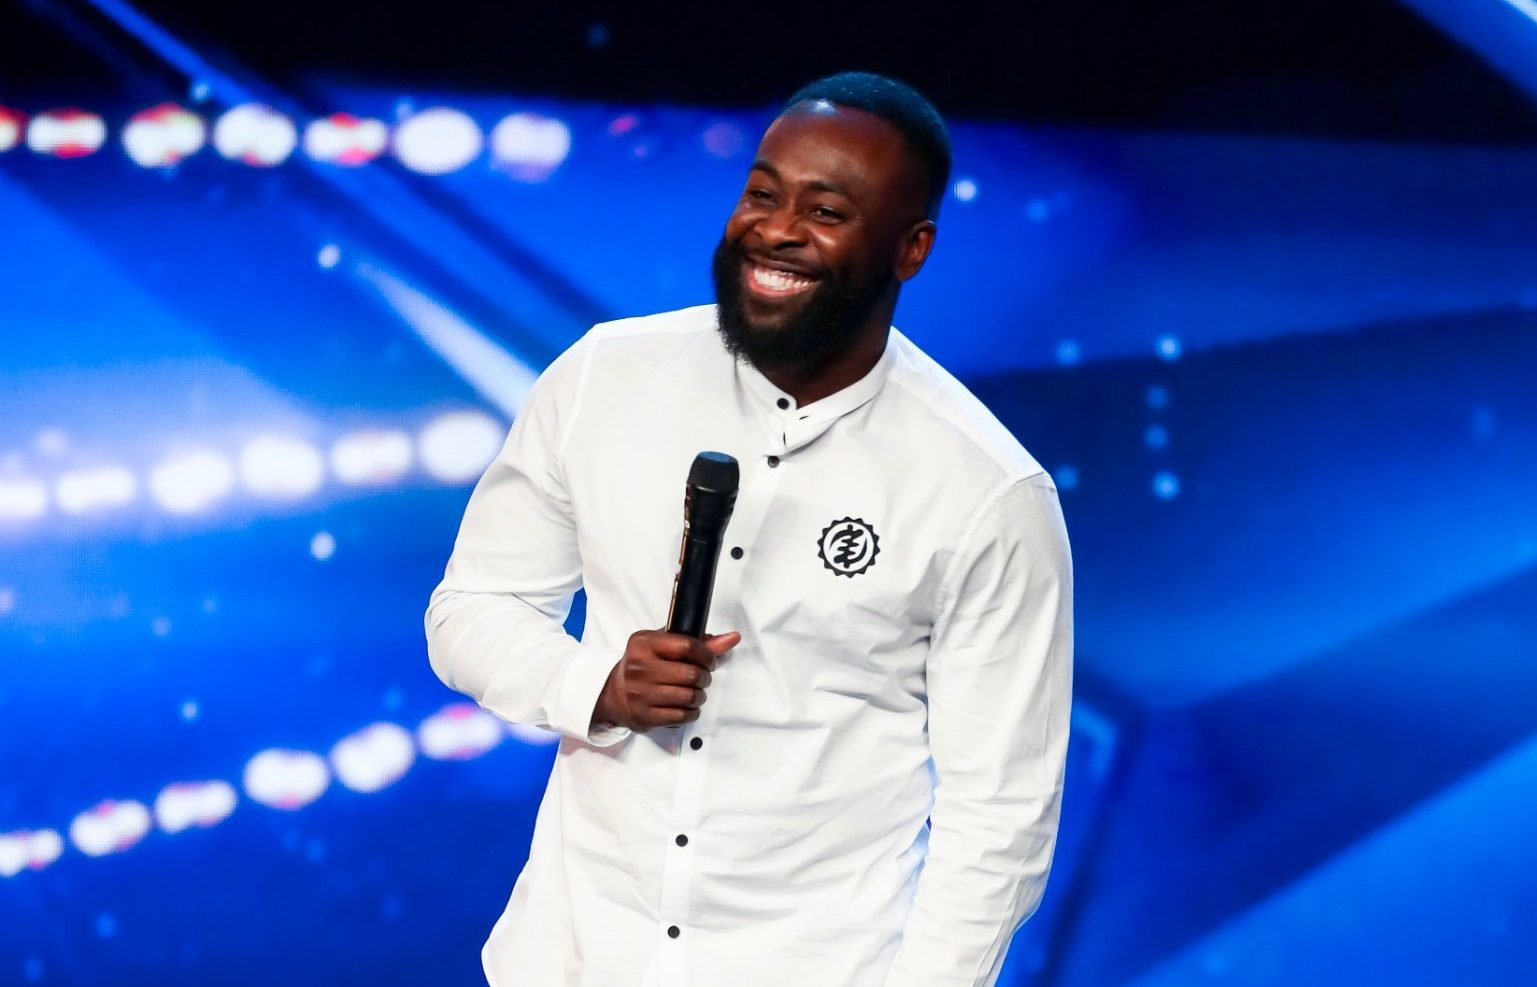 Who is Britain's Got Talent stand-up comedian Kojo Anim?